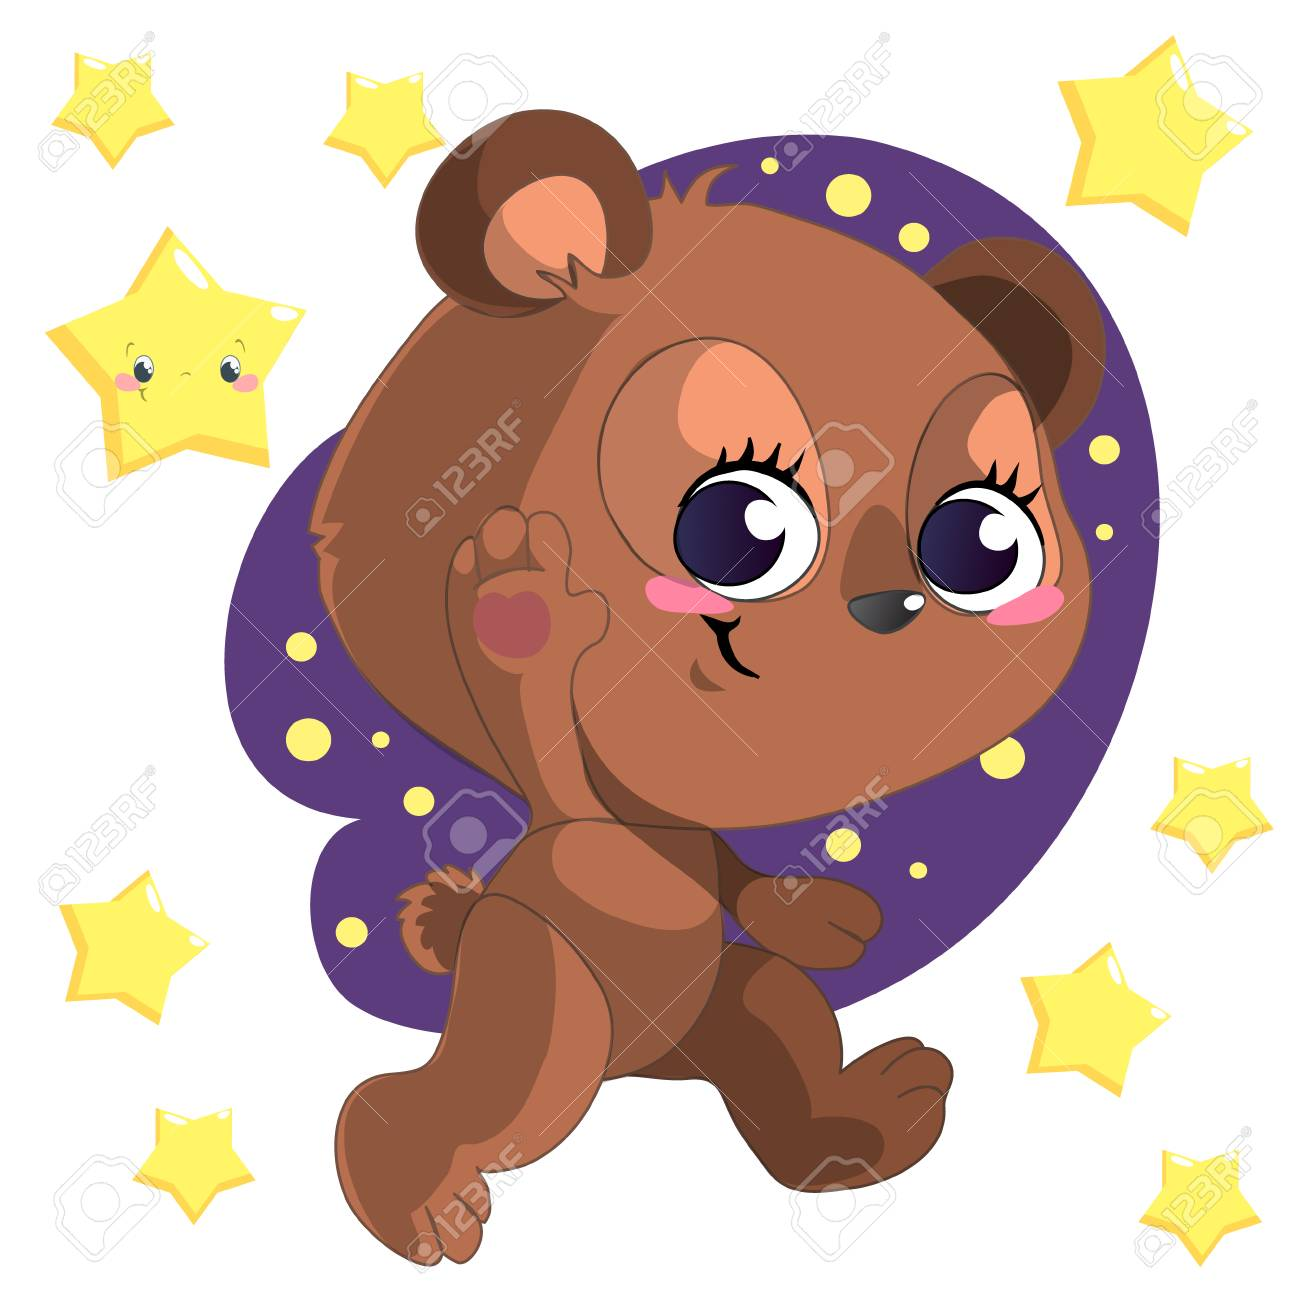 Funny cute cartoon bear clipart vector with stars.